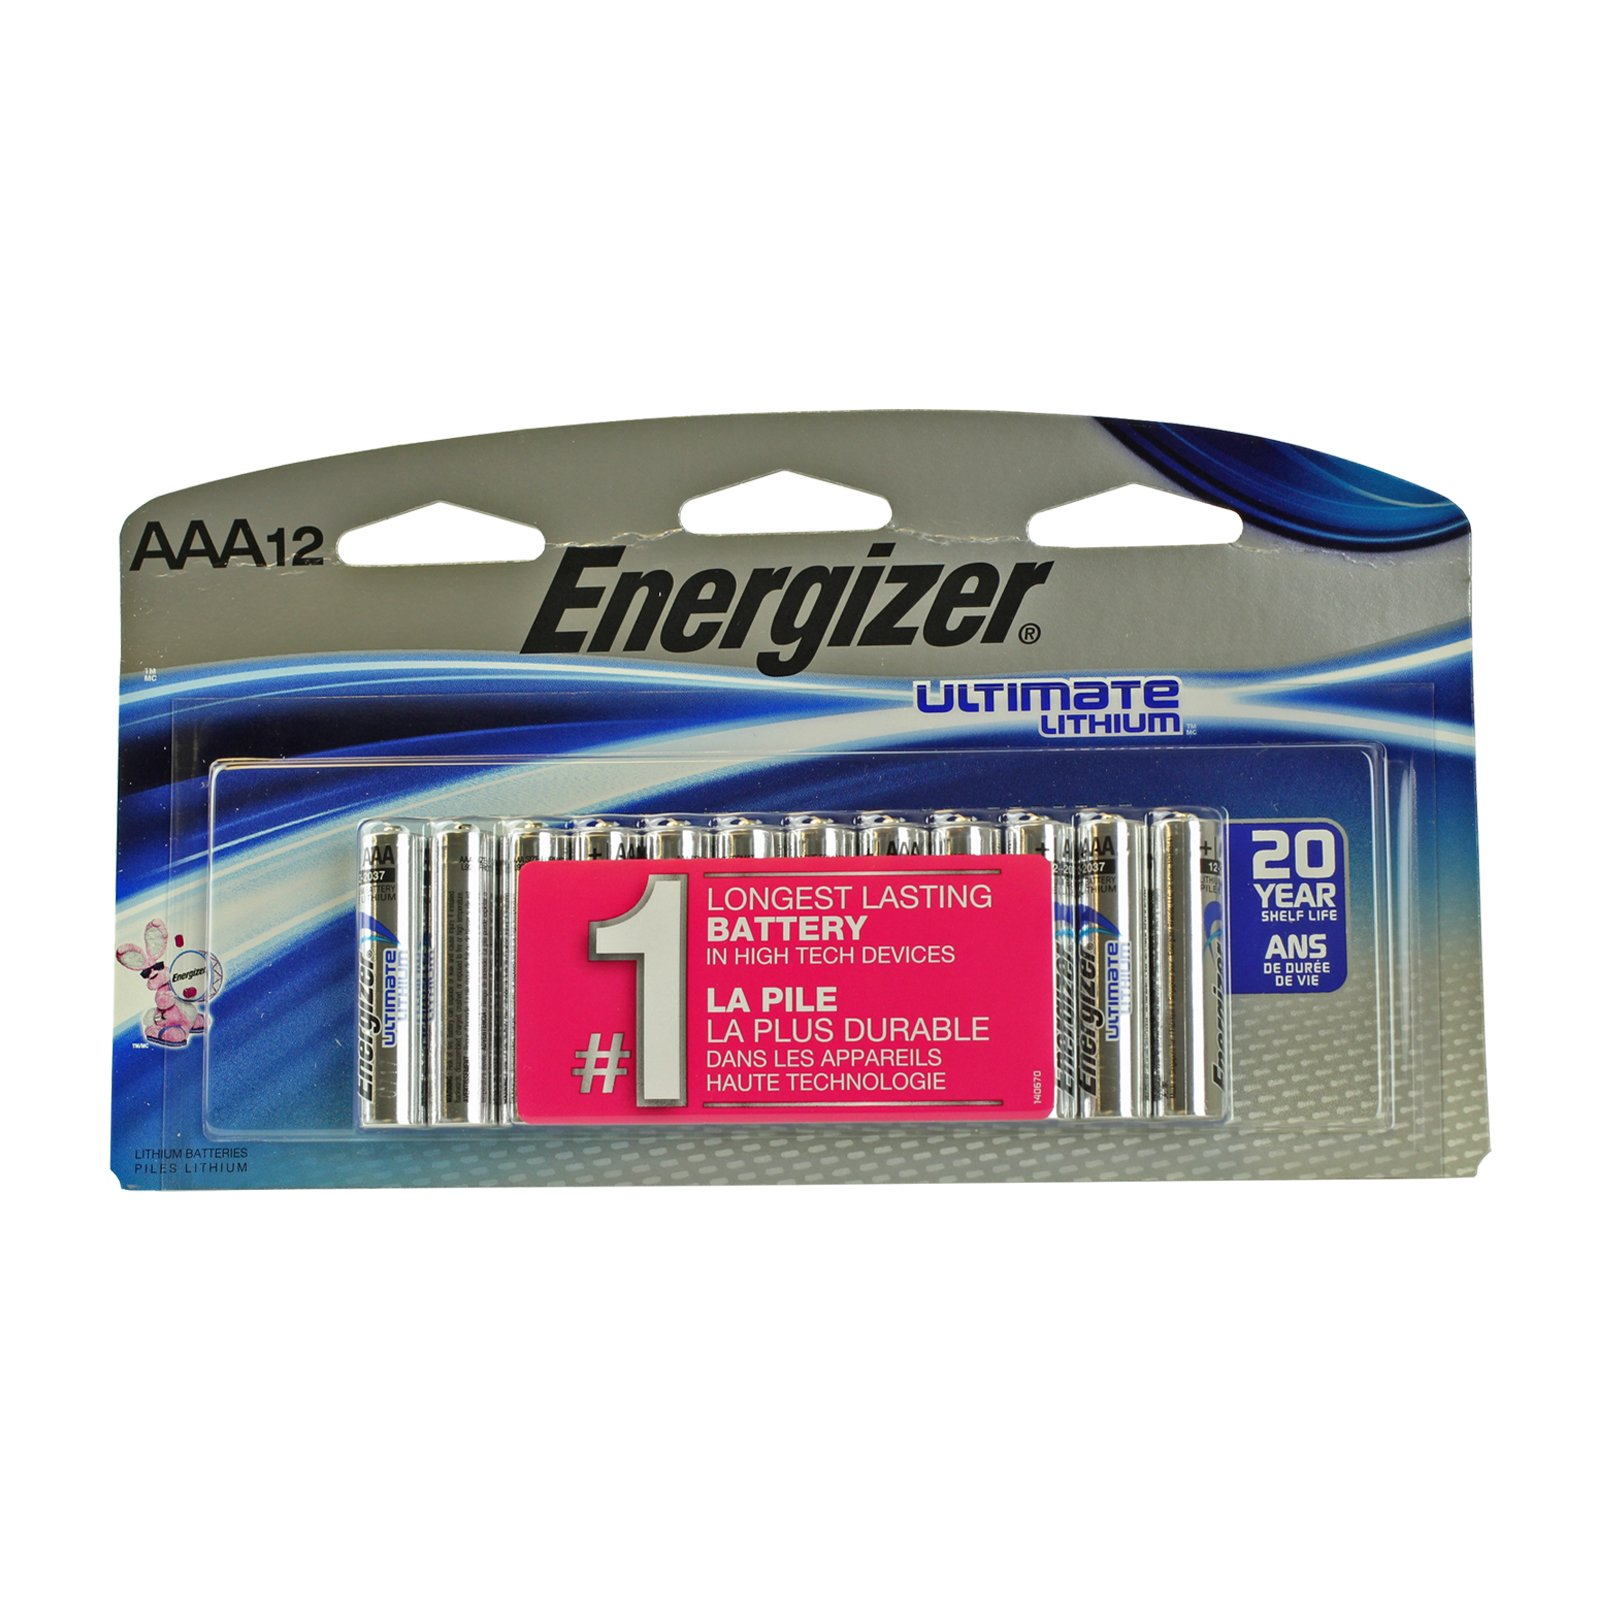 Energizer Ultimate AAA Lithium Batteries